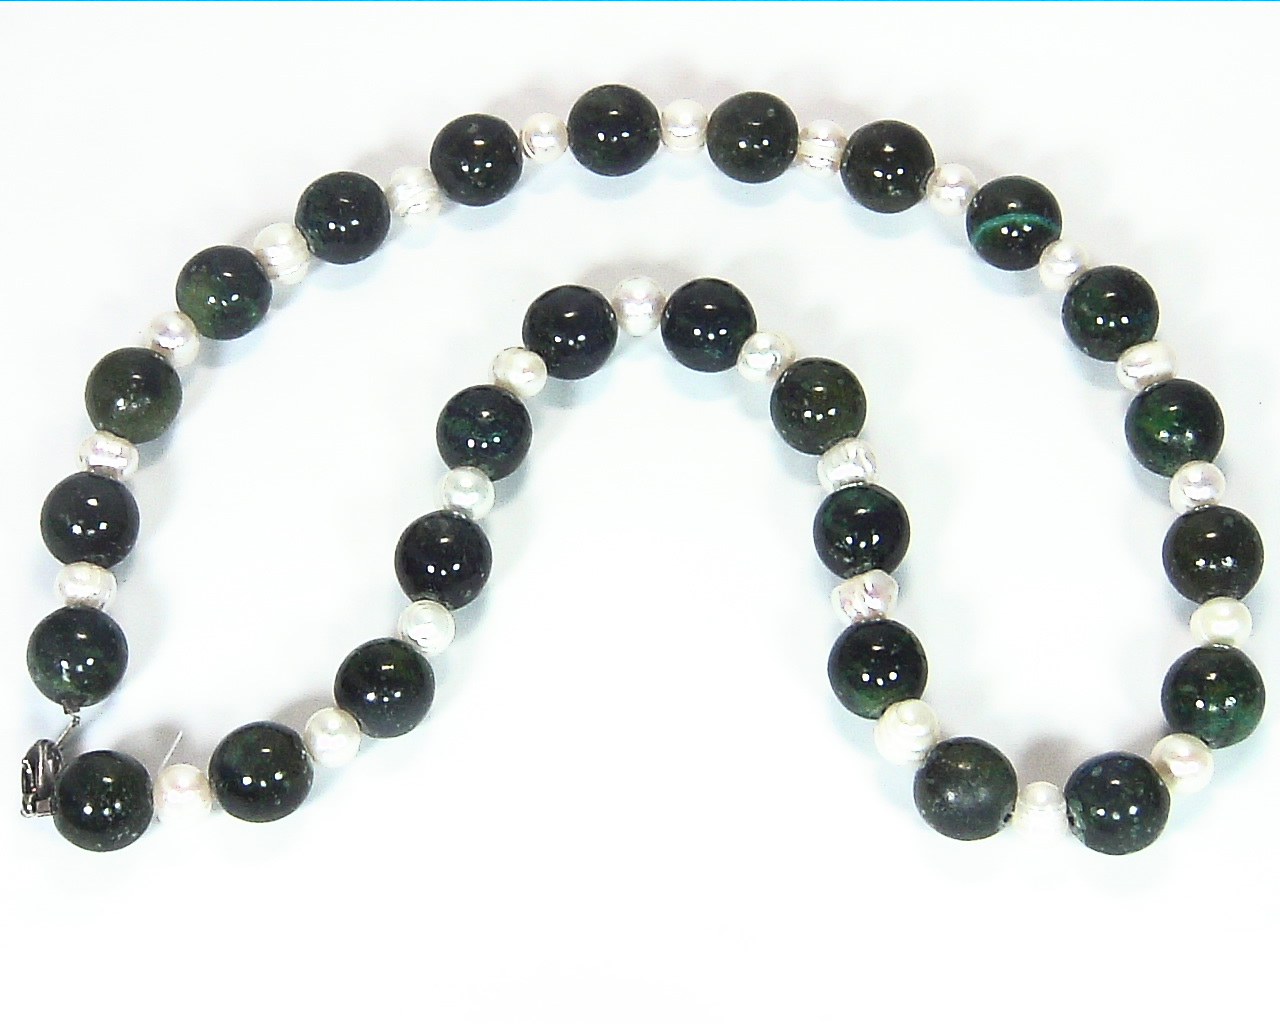 Presicola Bead And Pearl Necklace NBD 834 1